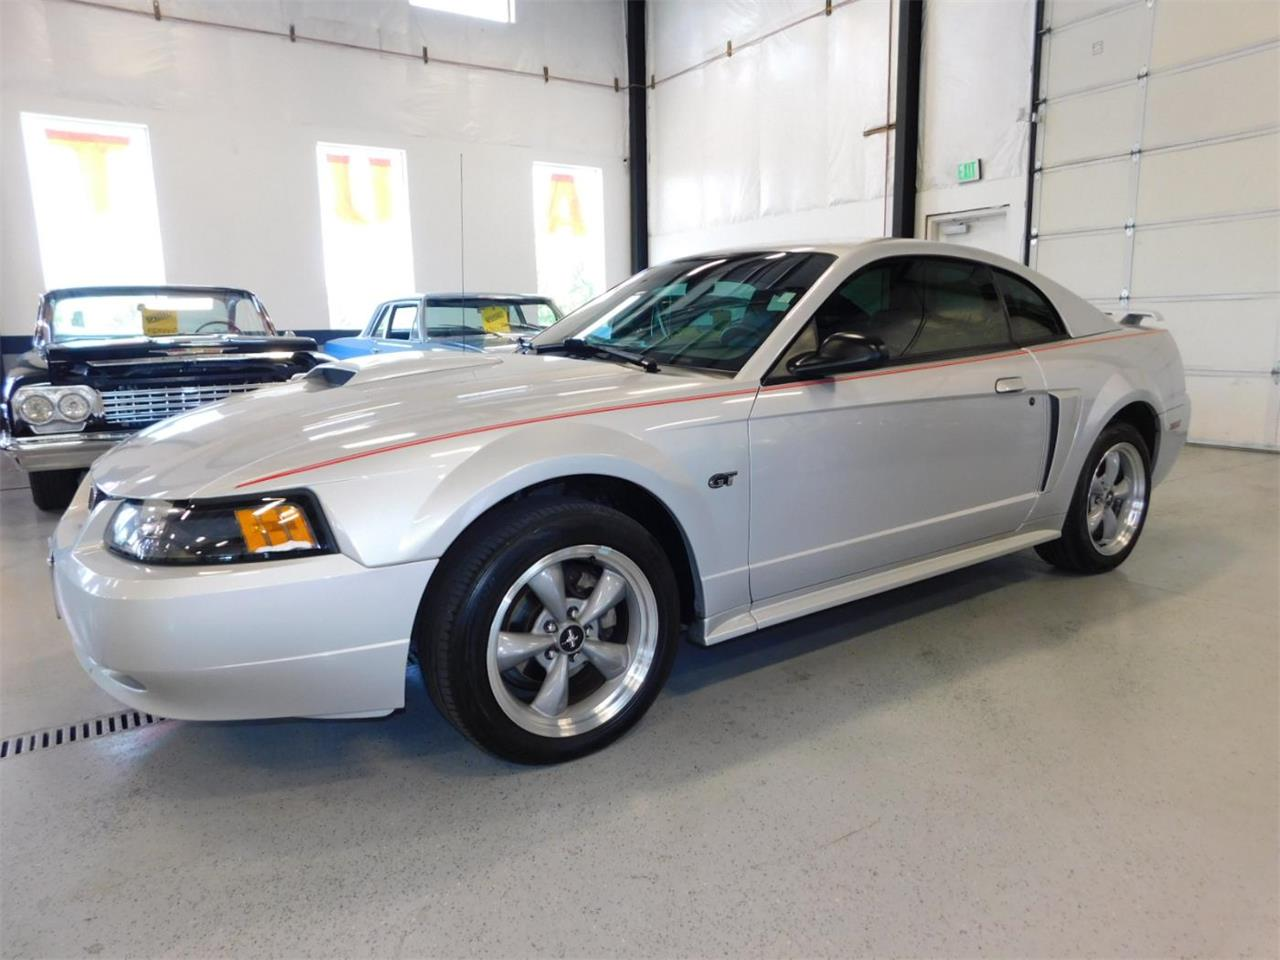 Large Picture Of 02 Mustang Gt Njvy